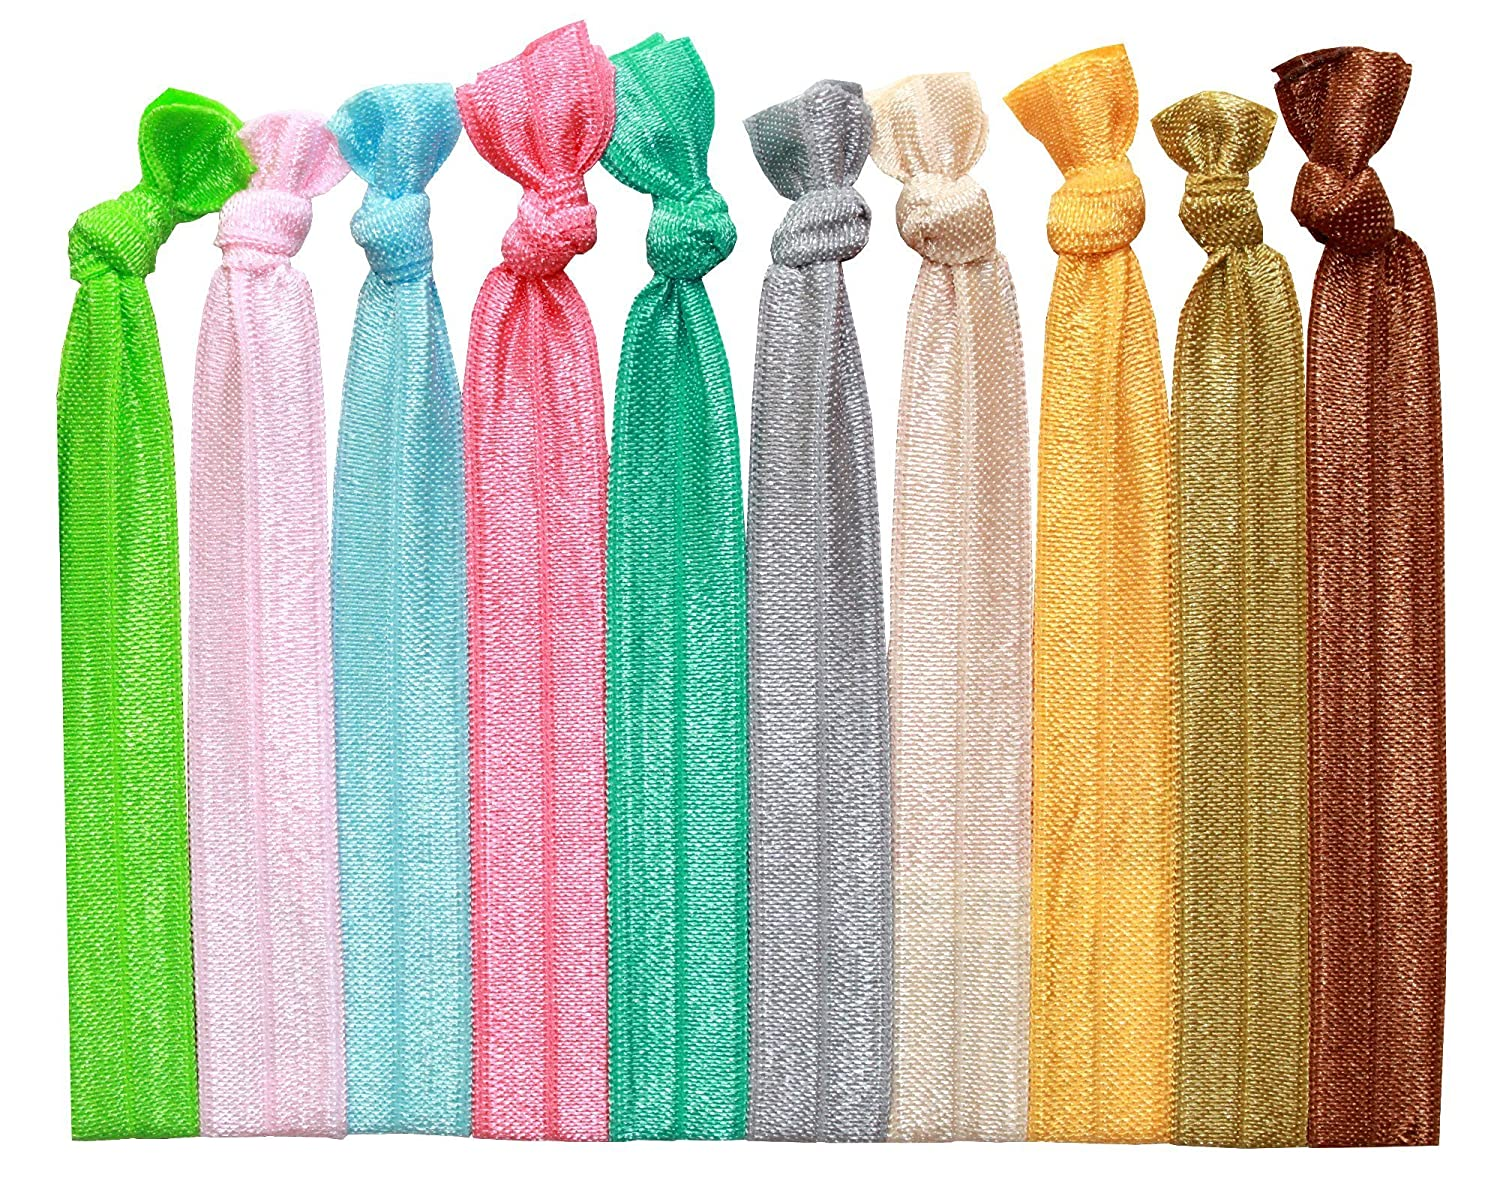 6f706848f0e3 Amazon.com : Syleia 100 Hair Ties - Bright and Pastel Colors - Elastic  Ponytail Holders No Crease Hand Knotted Fold Over Assorted 100 Pack : Beauty